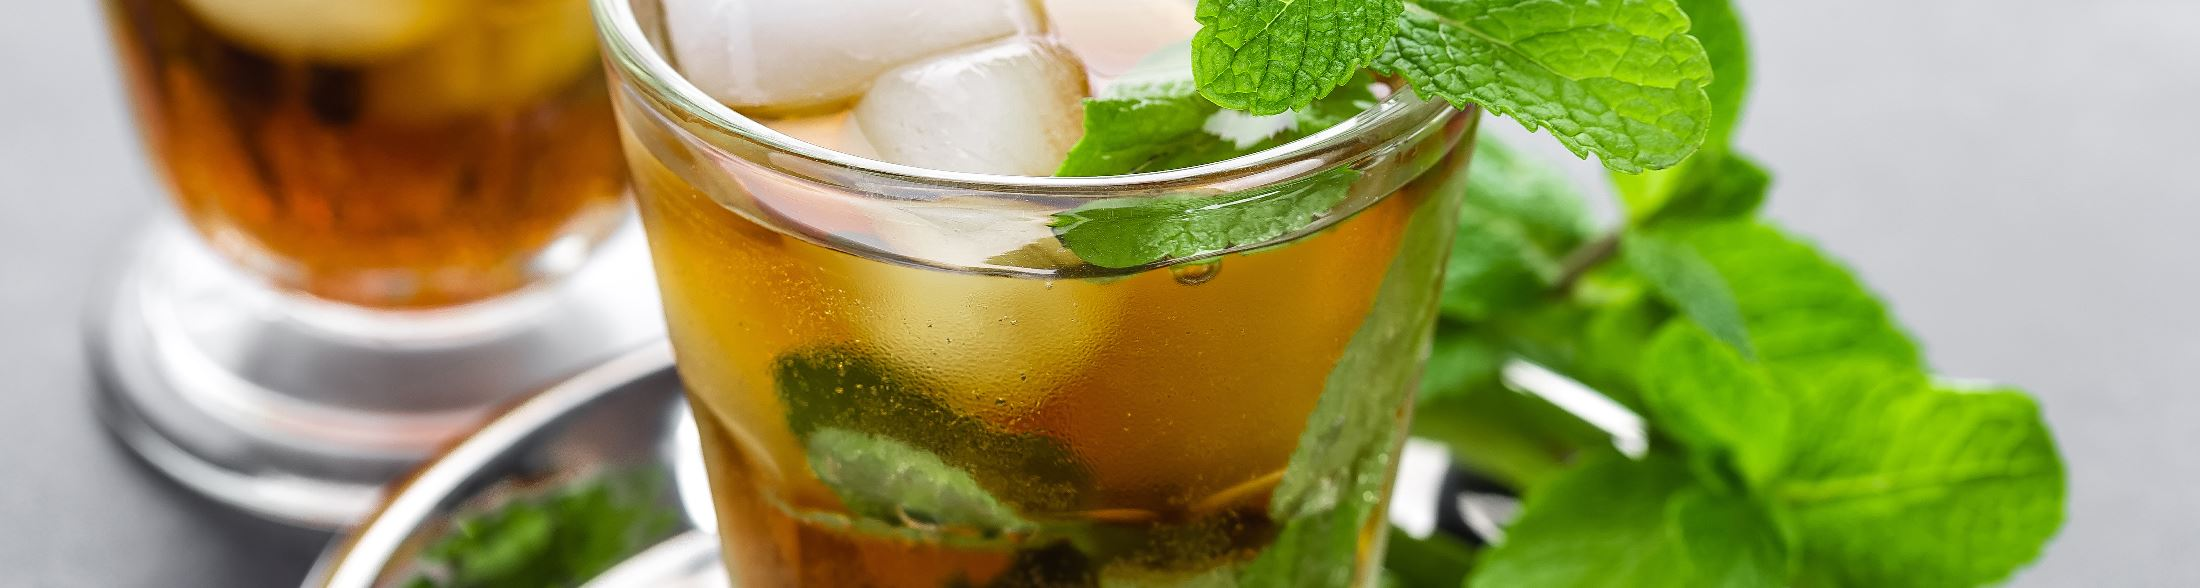 Glasses of mint juleps with fresh mint on top and on the side of the glass